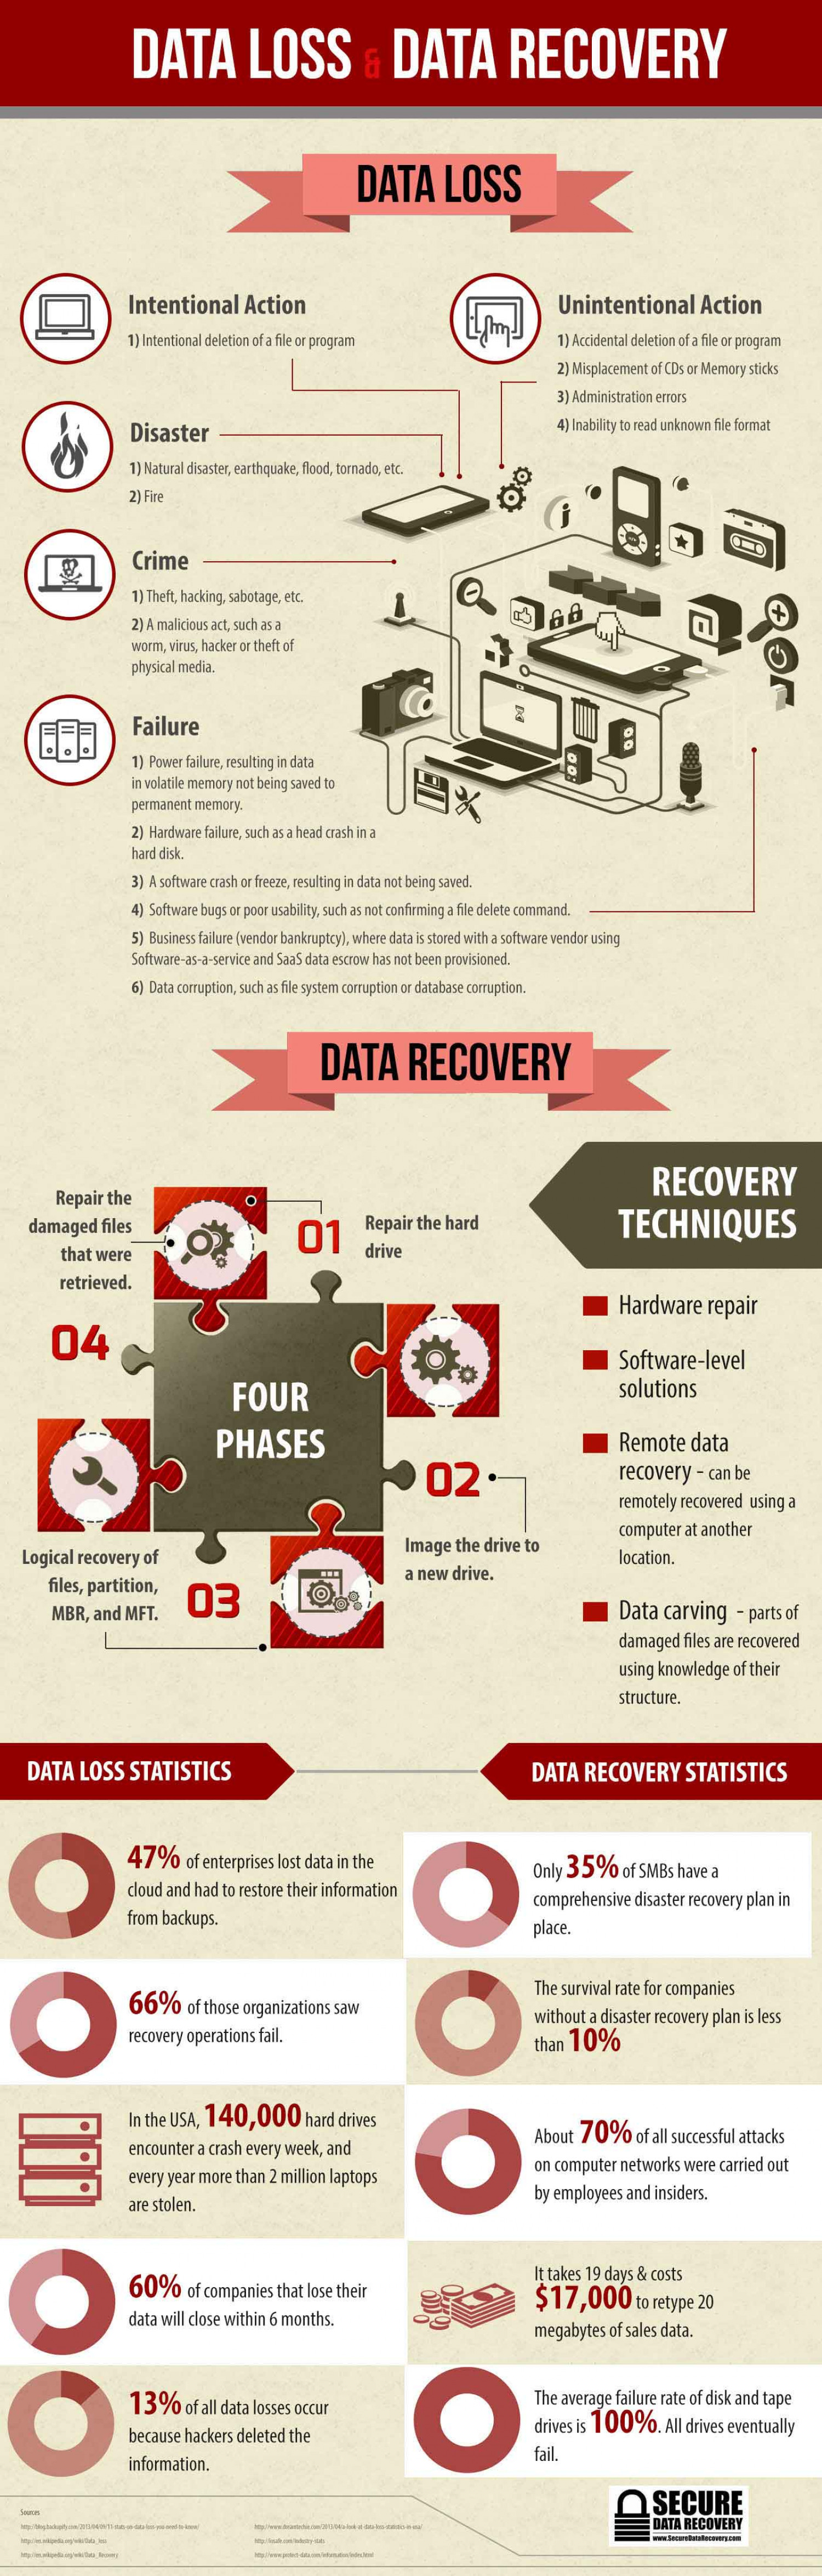 data loss  data recovery 53be9754ab715 w1500 - How to recover deleted files from Computer or Smartphone